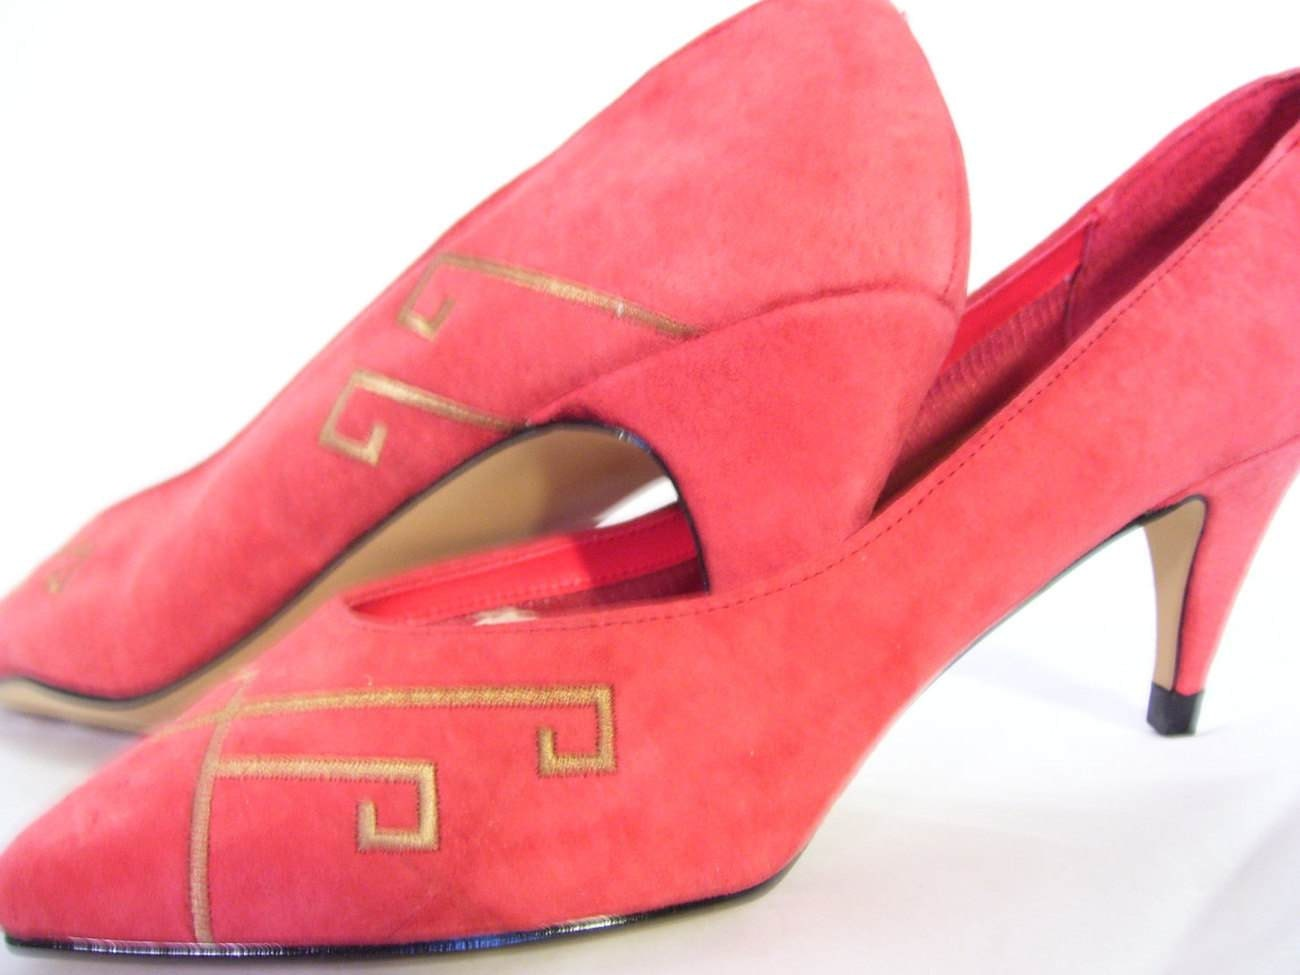 coral suede leather high heel shoes pumps sale by